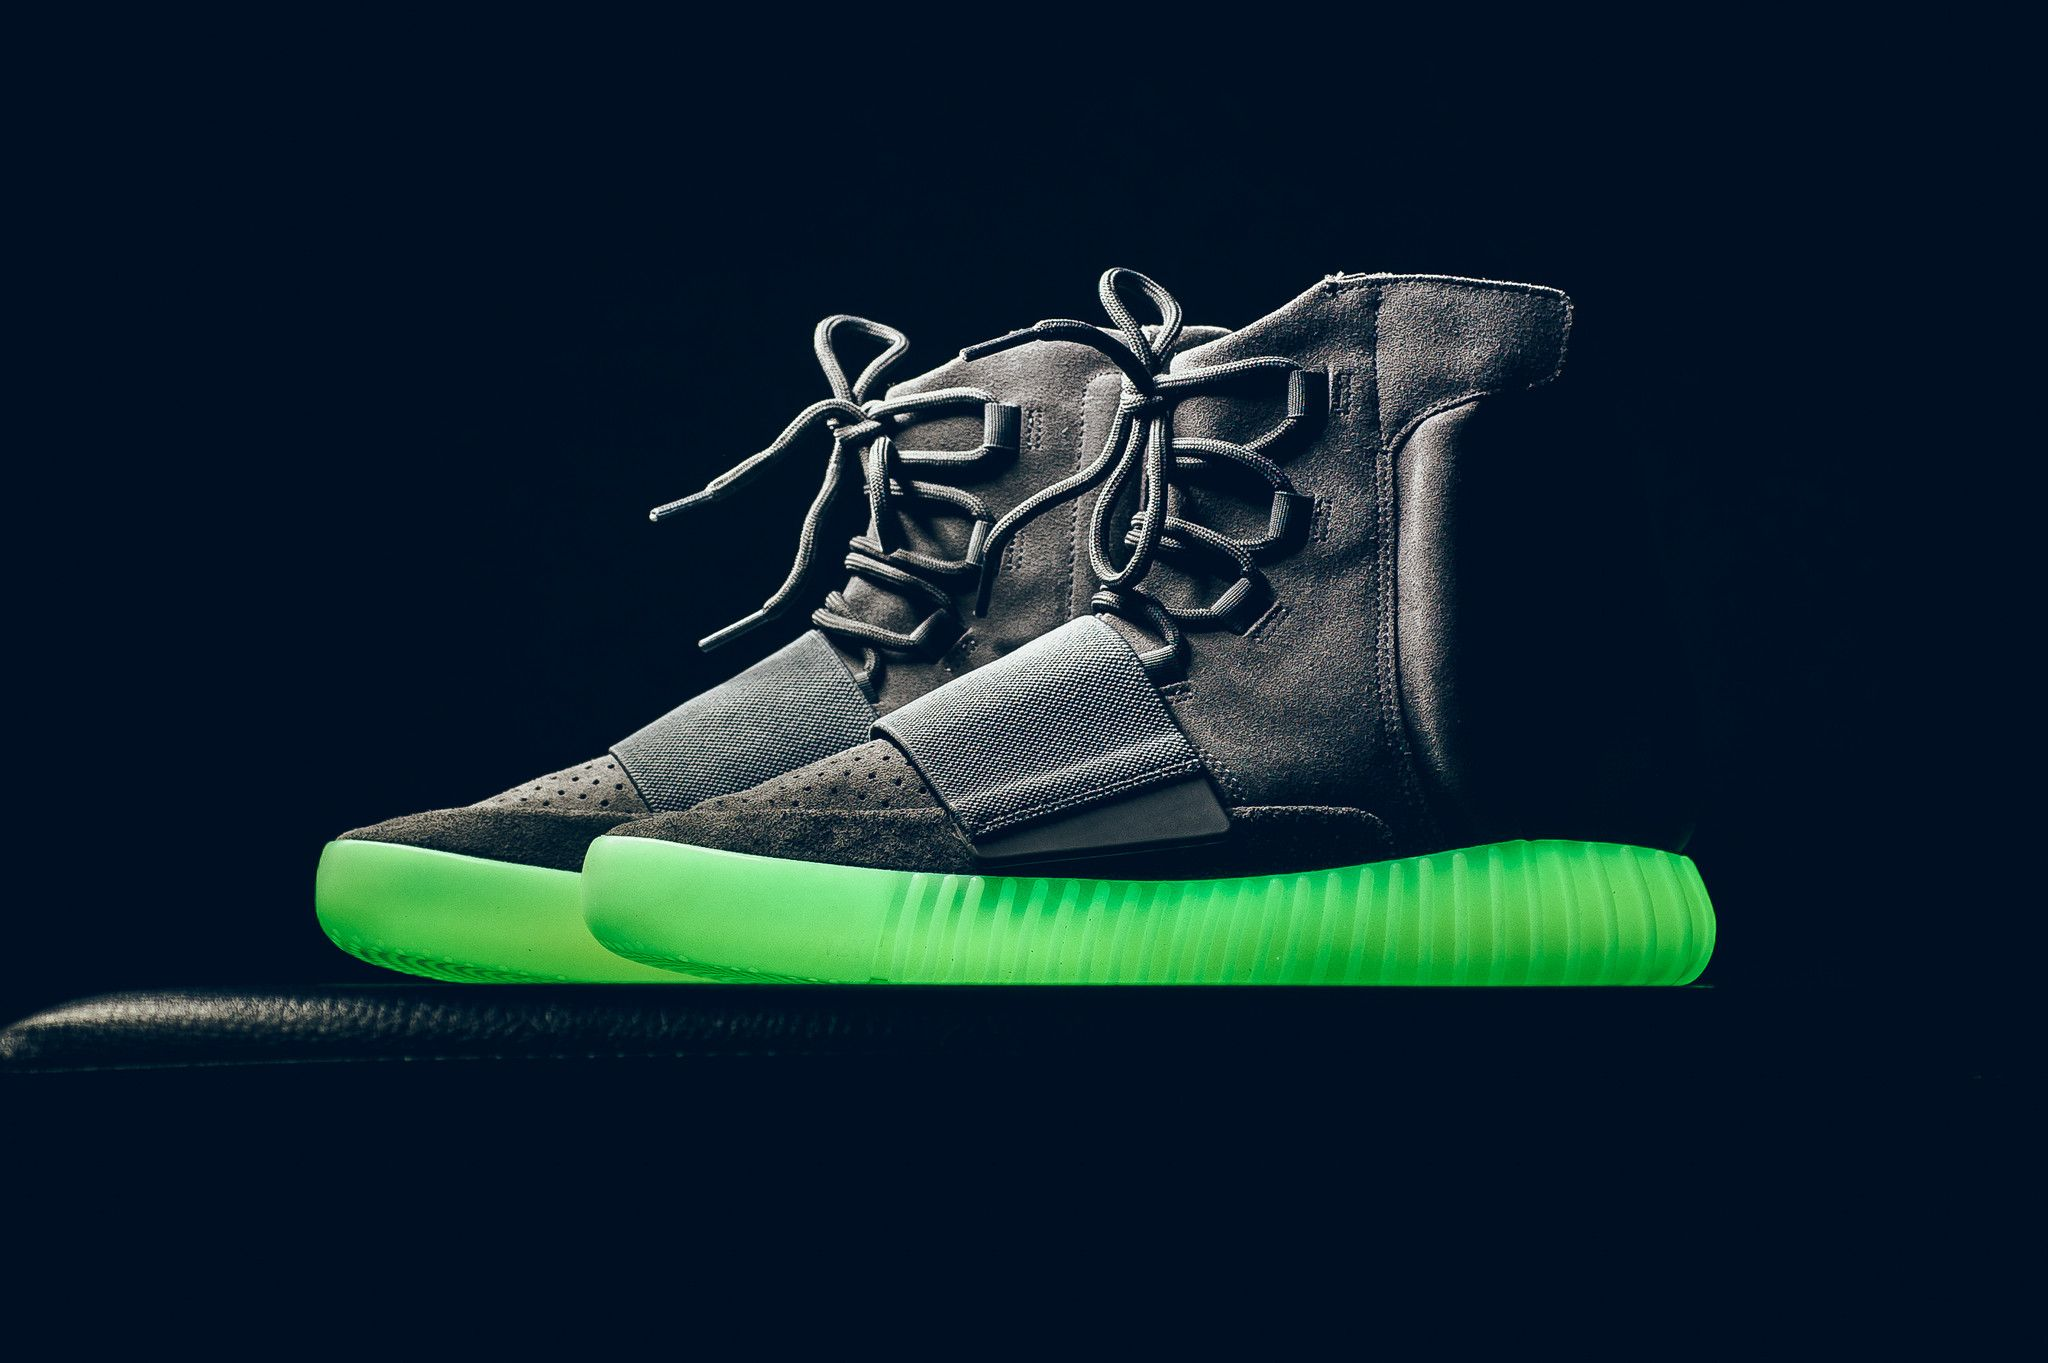 48adb6c99036 The adidas Yeezy 750 Boost will be open for reservations via the adidas  Confirmed app at EST on June for those located in New York City.